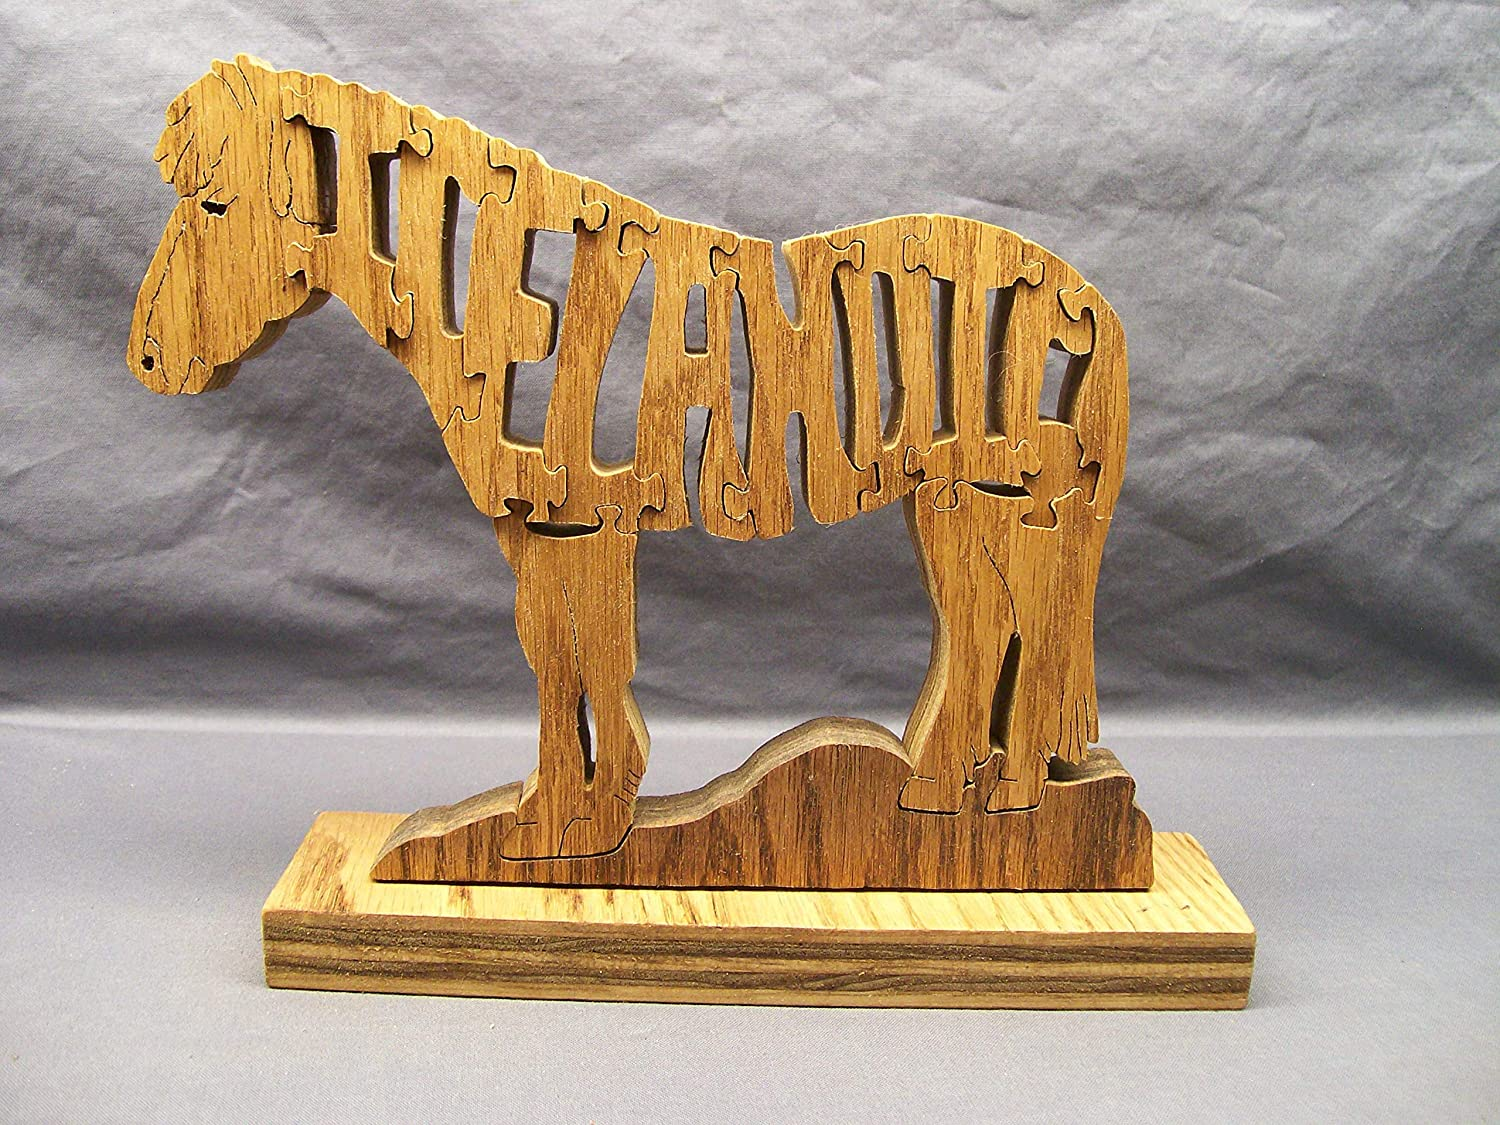 Horse Puzzle Driving Woodimals